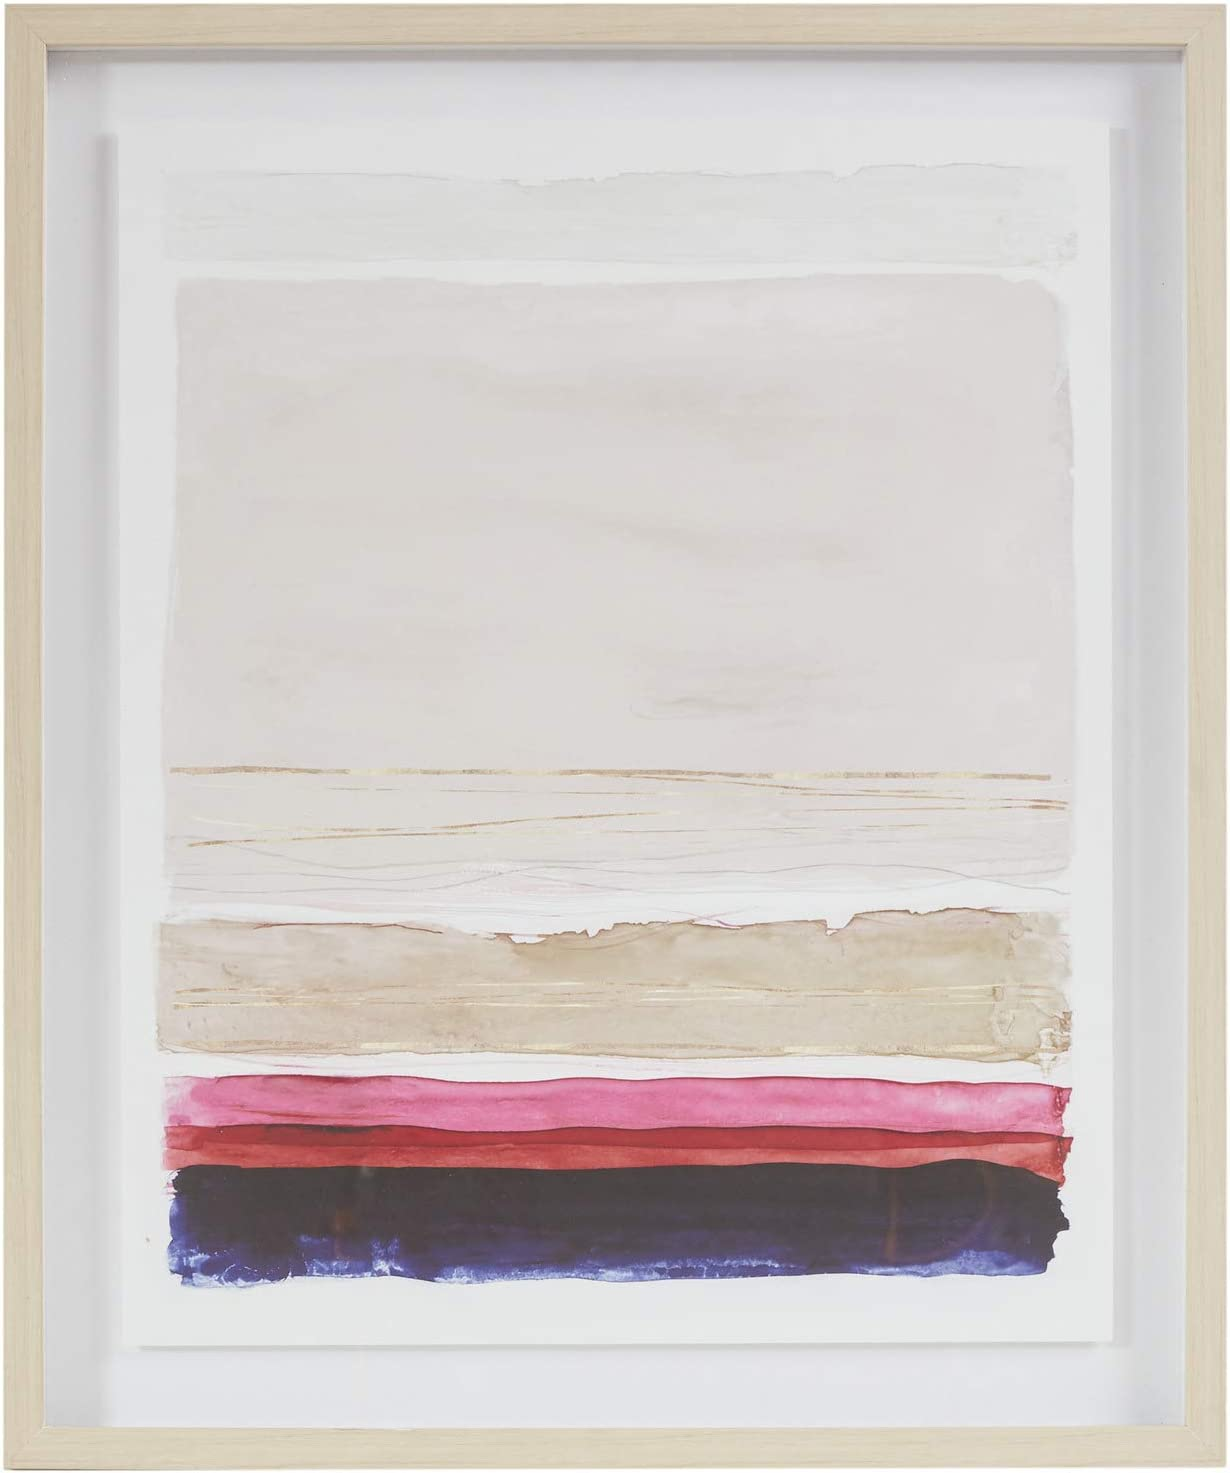 "MARTHA STEWART Rothko's Stripes II Wall Art Living Room Glass Framed Canvas Home Accent Abstract Watercolor Bathroom Decoration, Ready to Hang Poster Painting for Bedroom, 21.1"" X 25.1"", Multi"